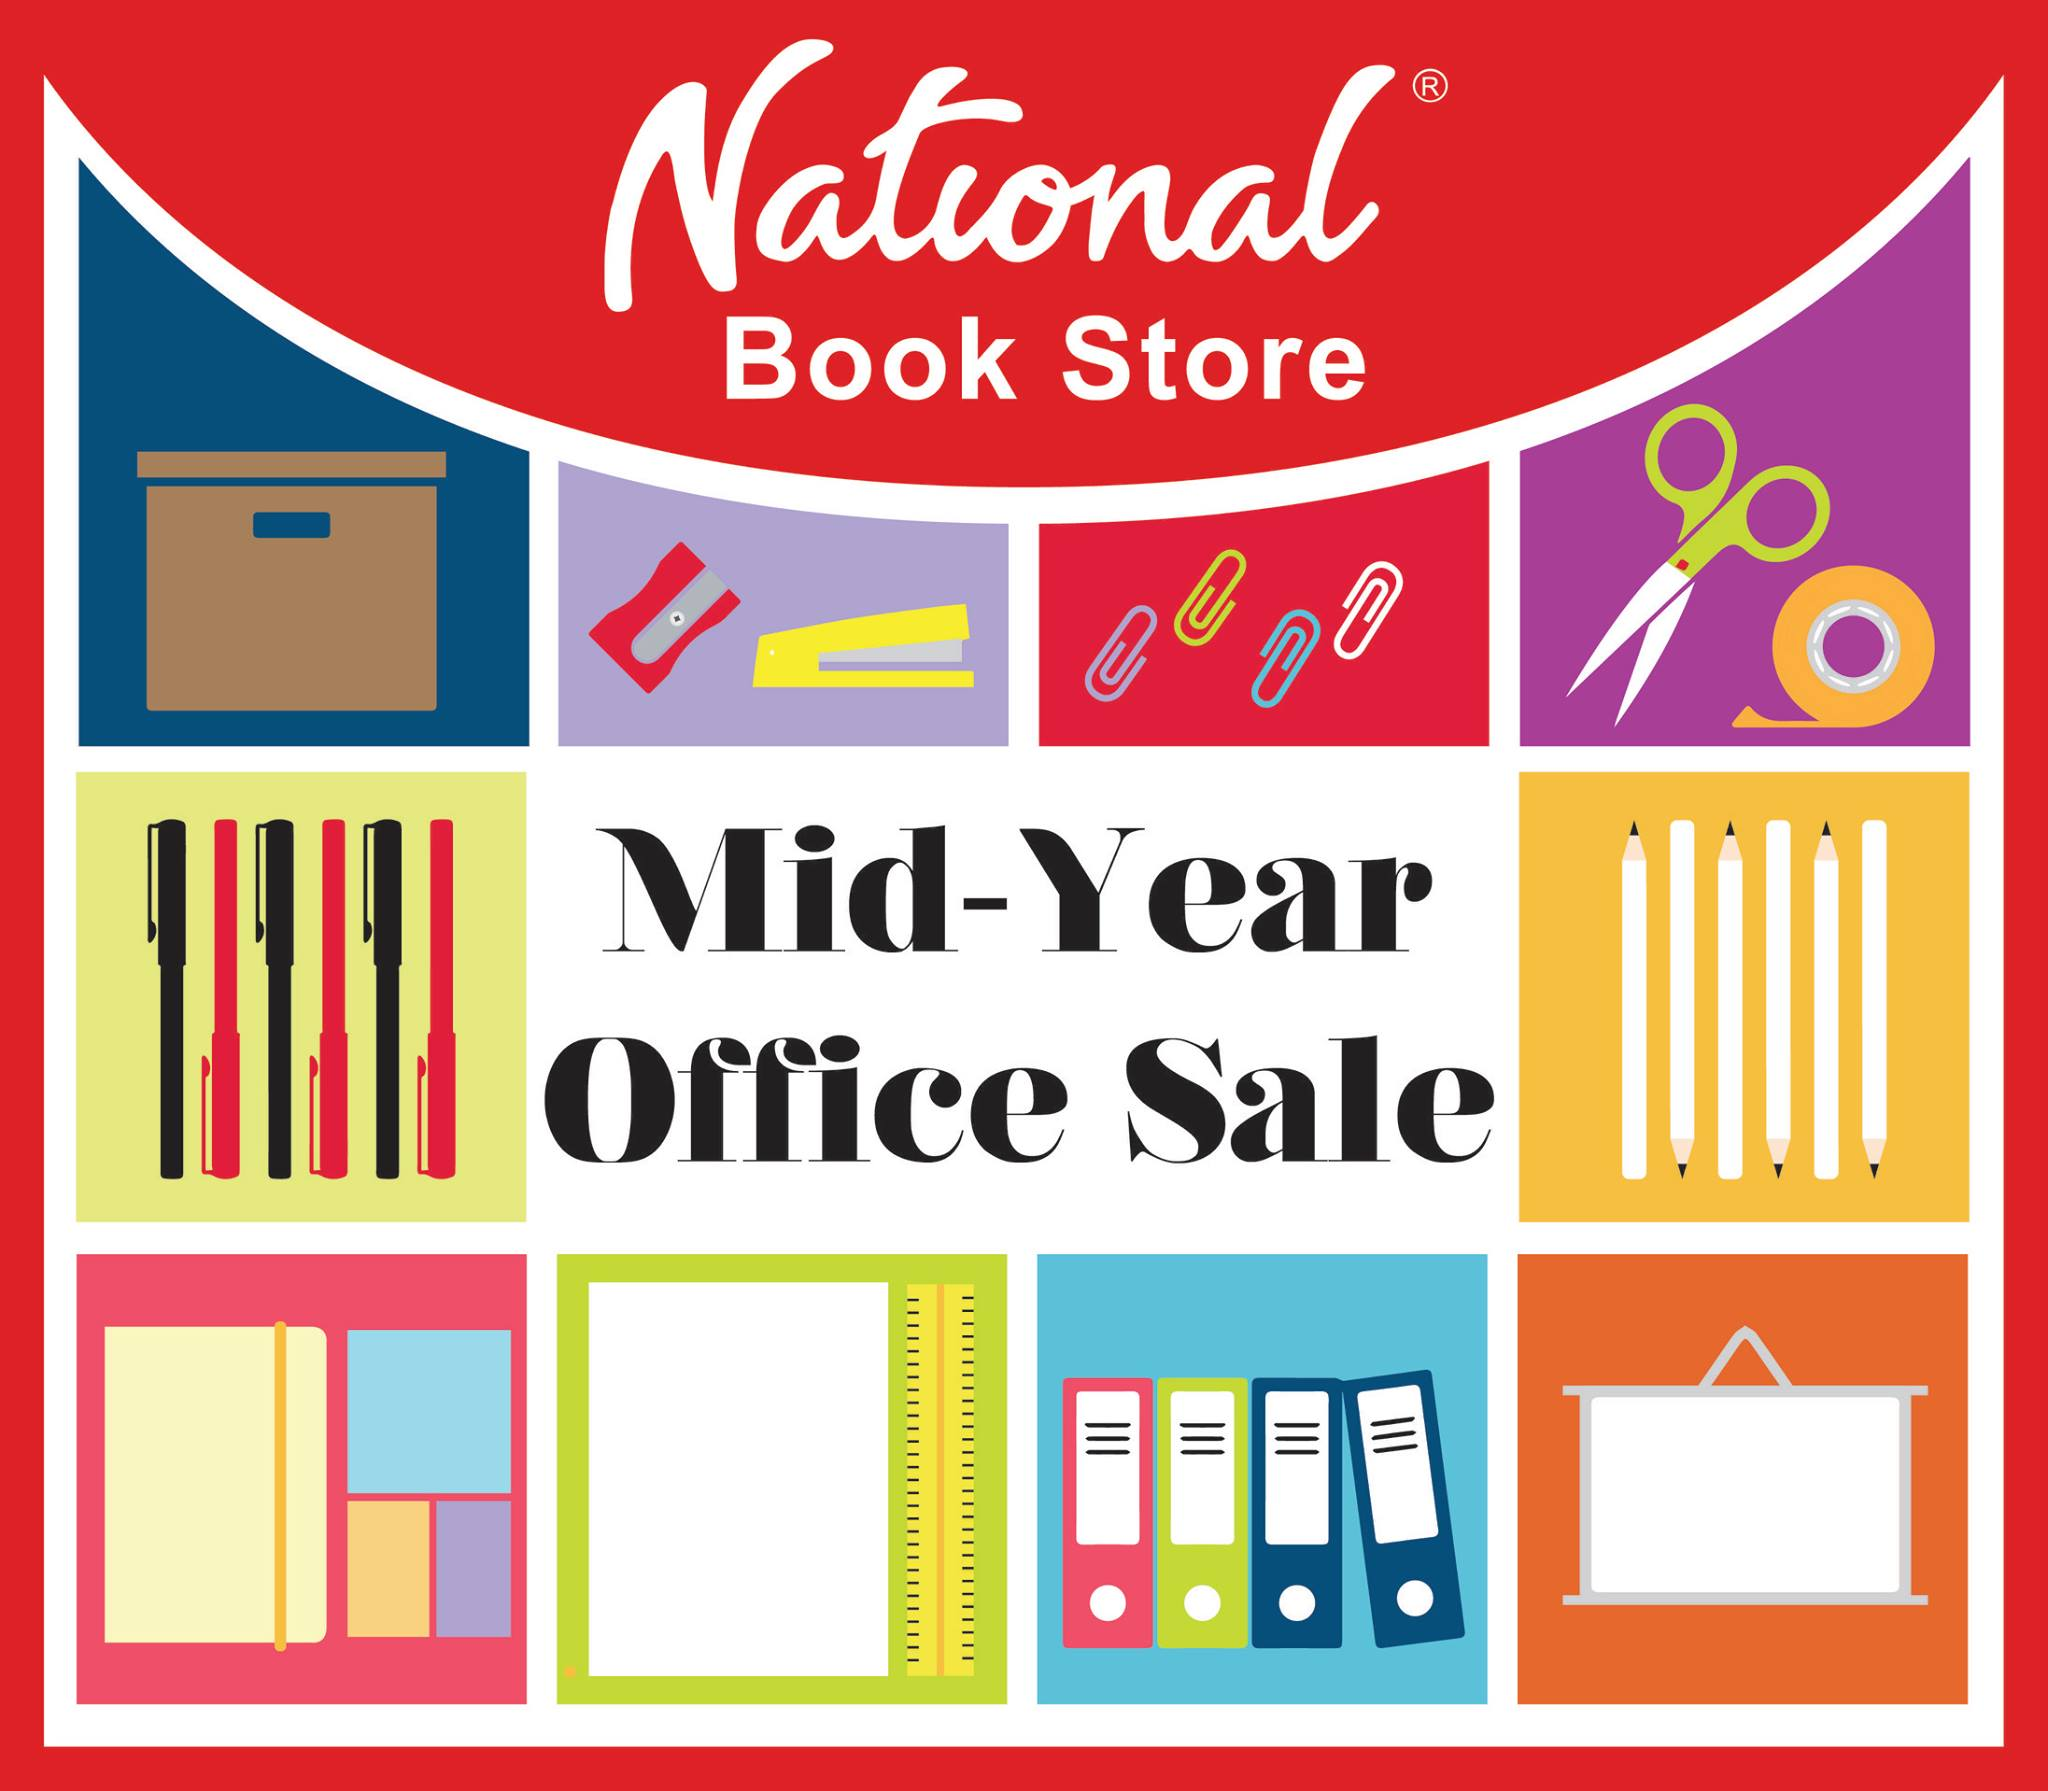 National Book Store Mid Year Office Sale August 2015